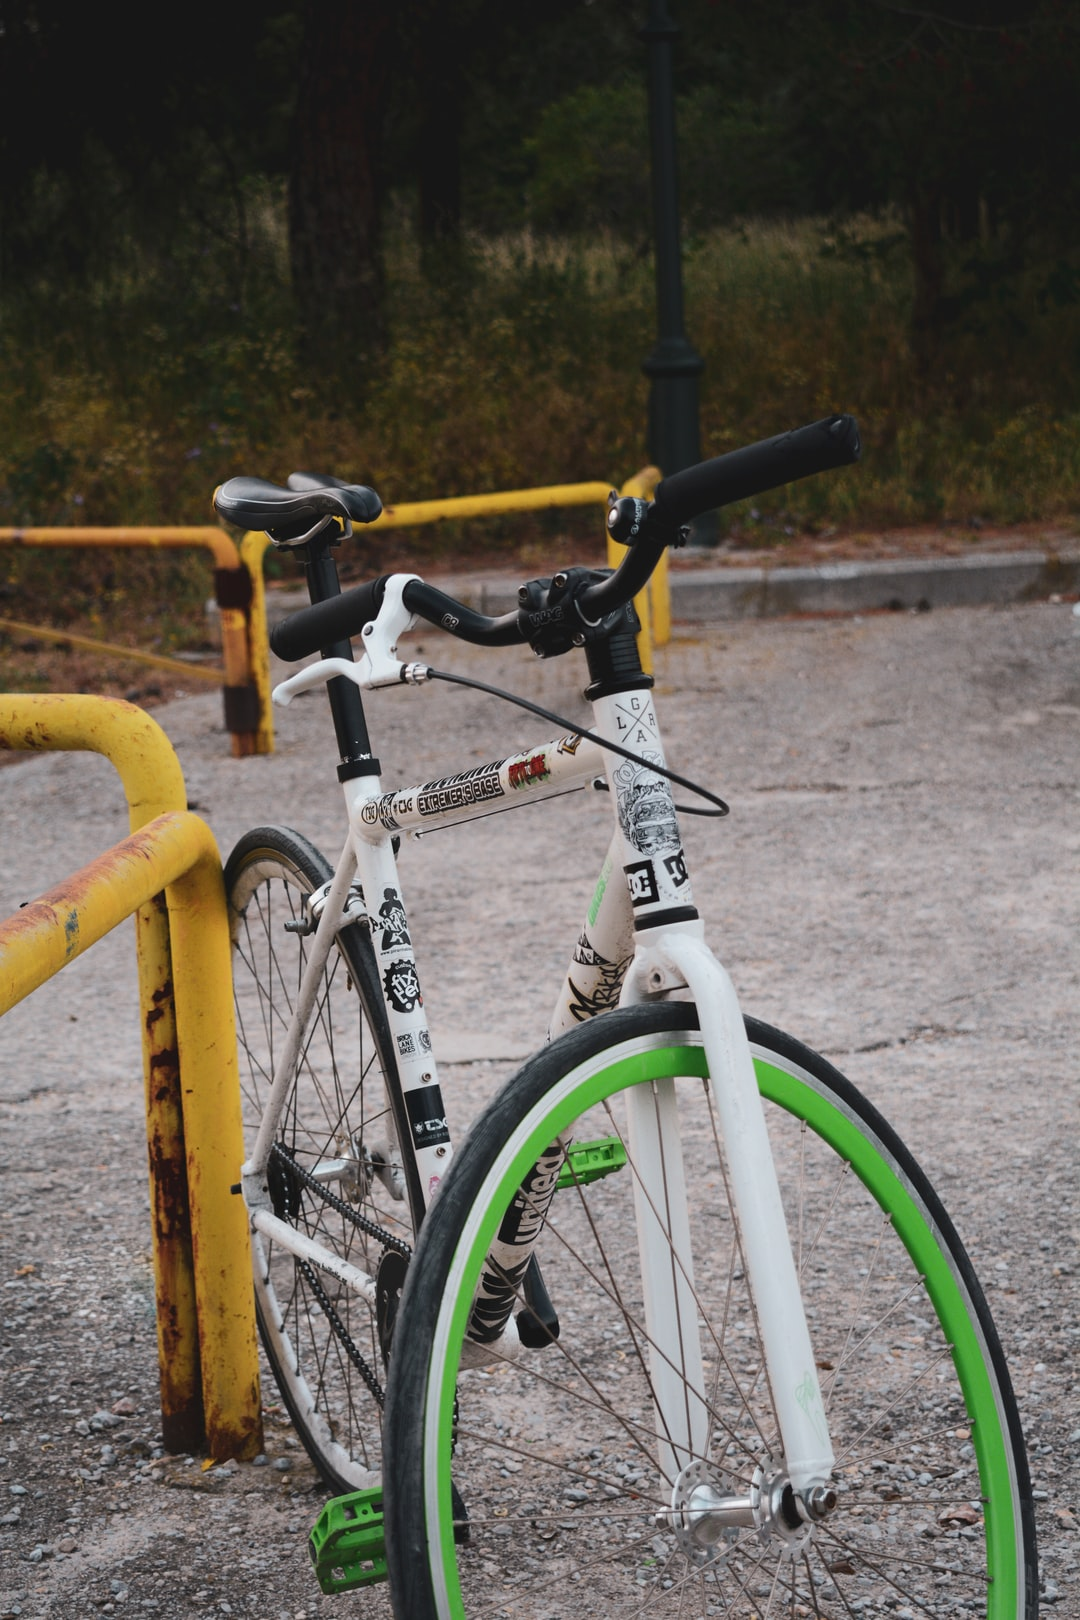 A Ballistic Fix bike - White and Green color with many stickers.